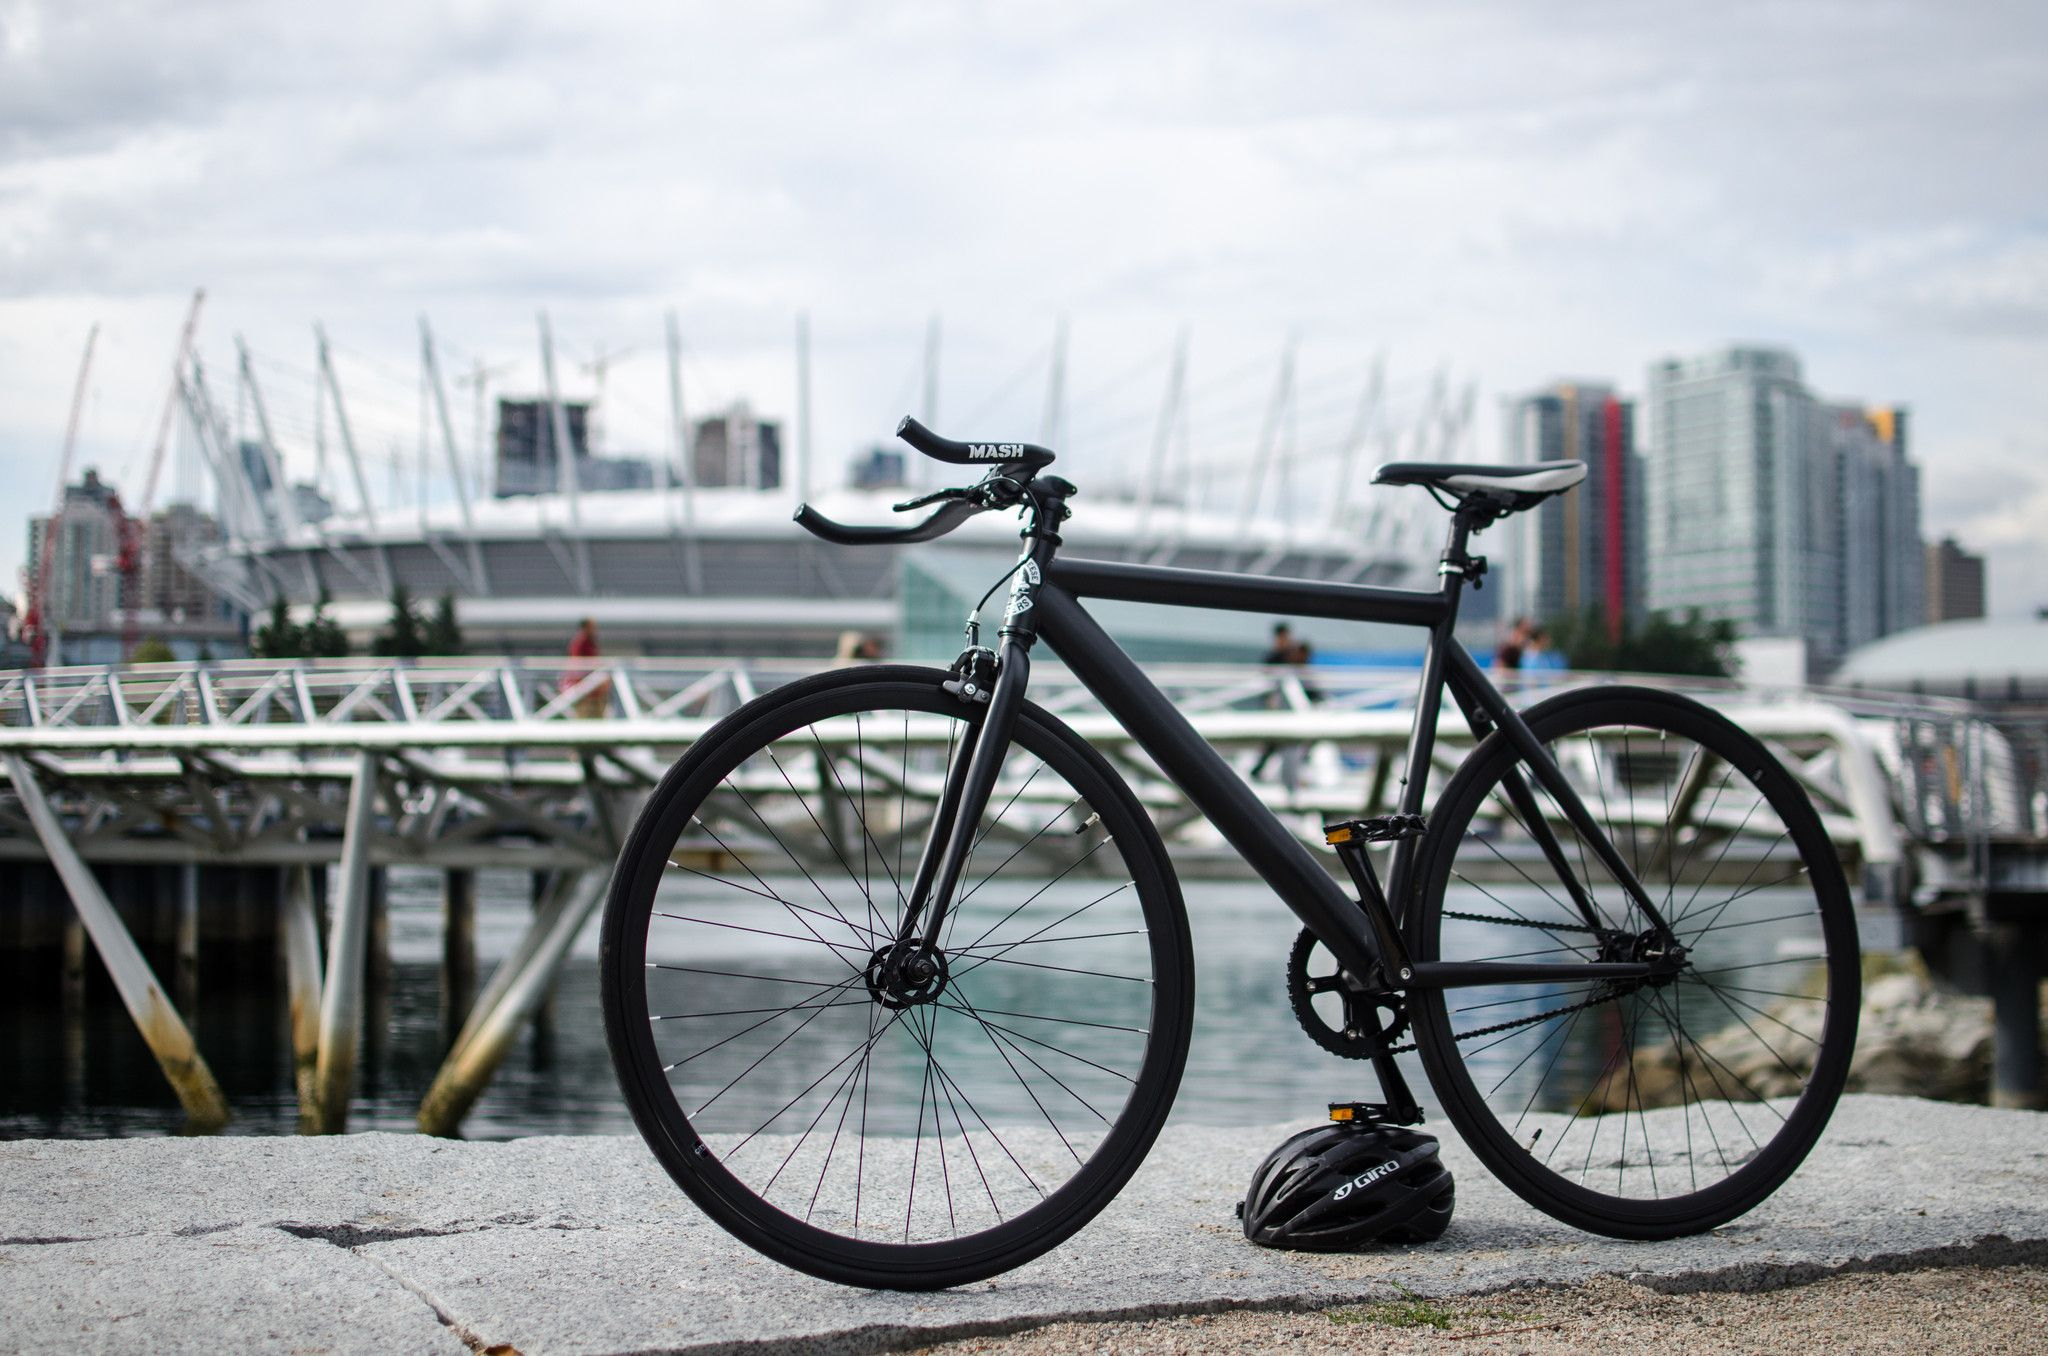 The City Type 001 Los Angeles Fixed Gear Bicycle